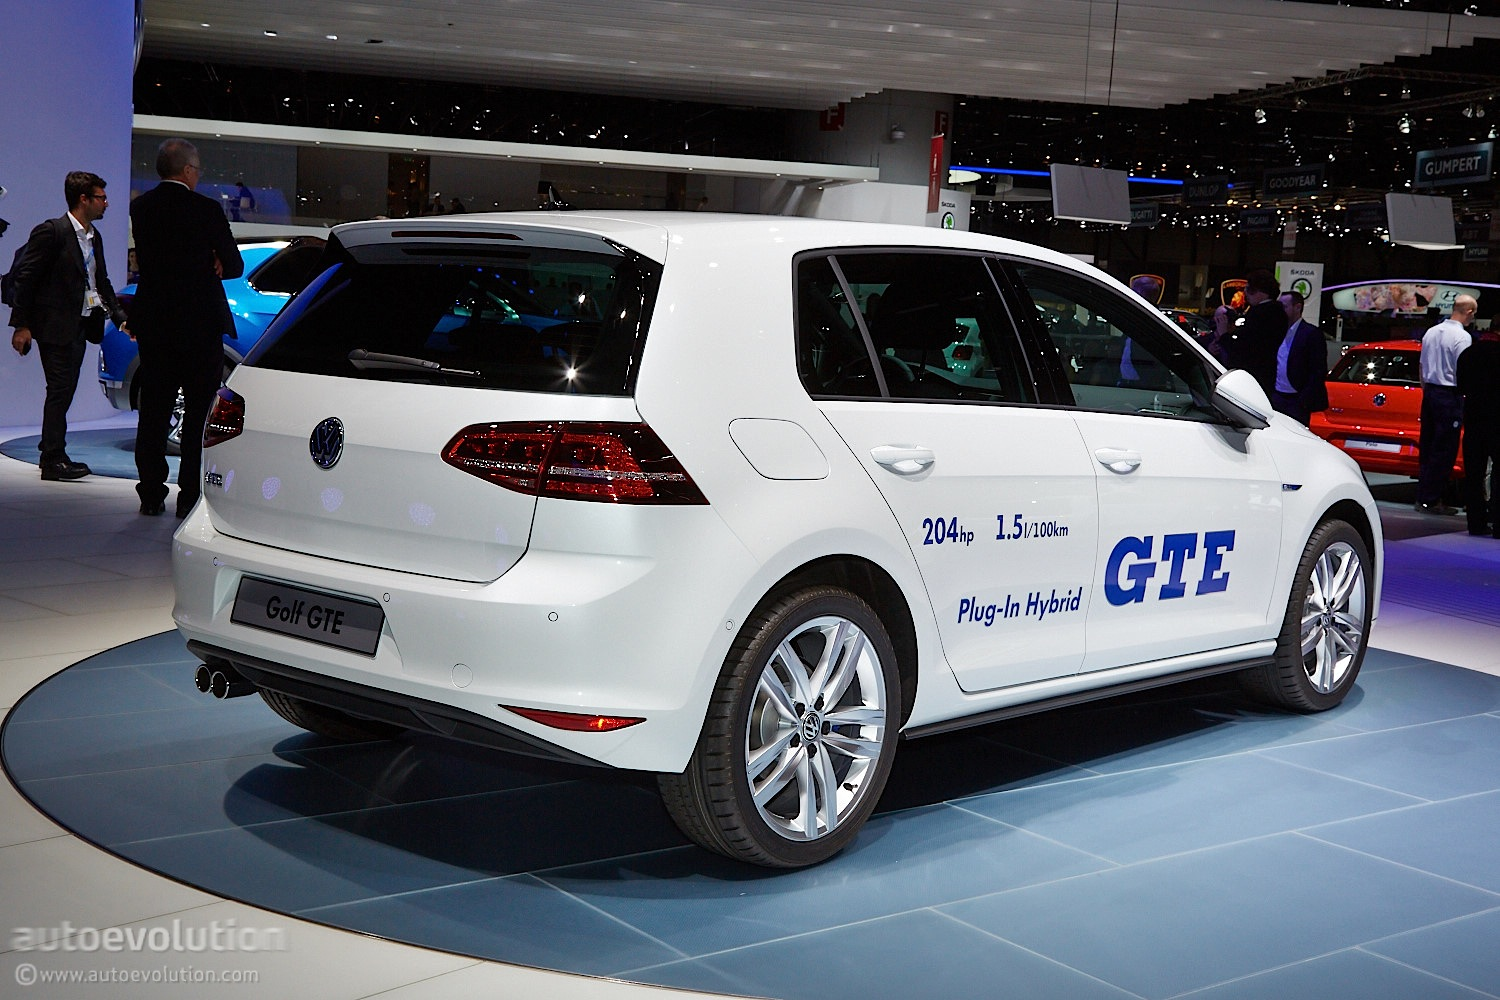 geneva 2014 volkswagen golf gte combines a prius and a gti live photos autoevolution. Black Bedroom Furniture Sets. Home Design Ideas